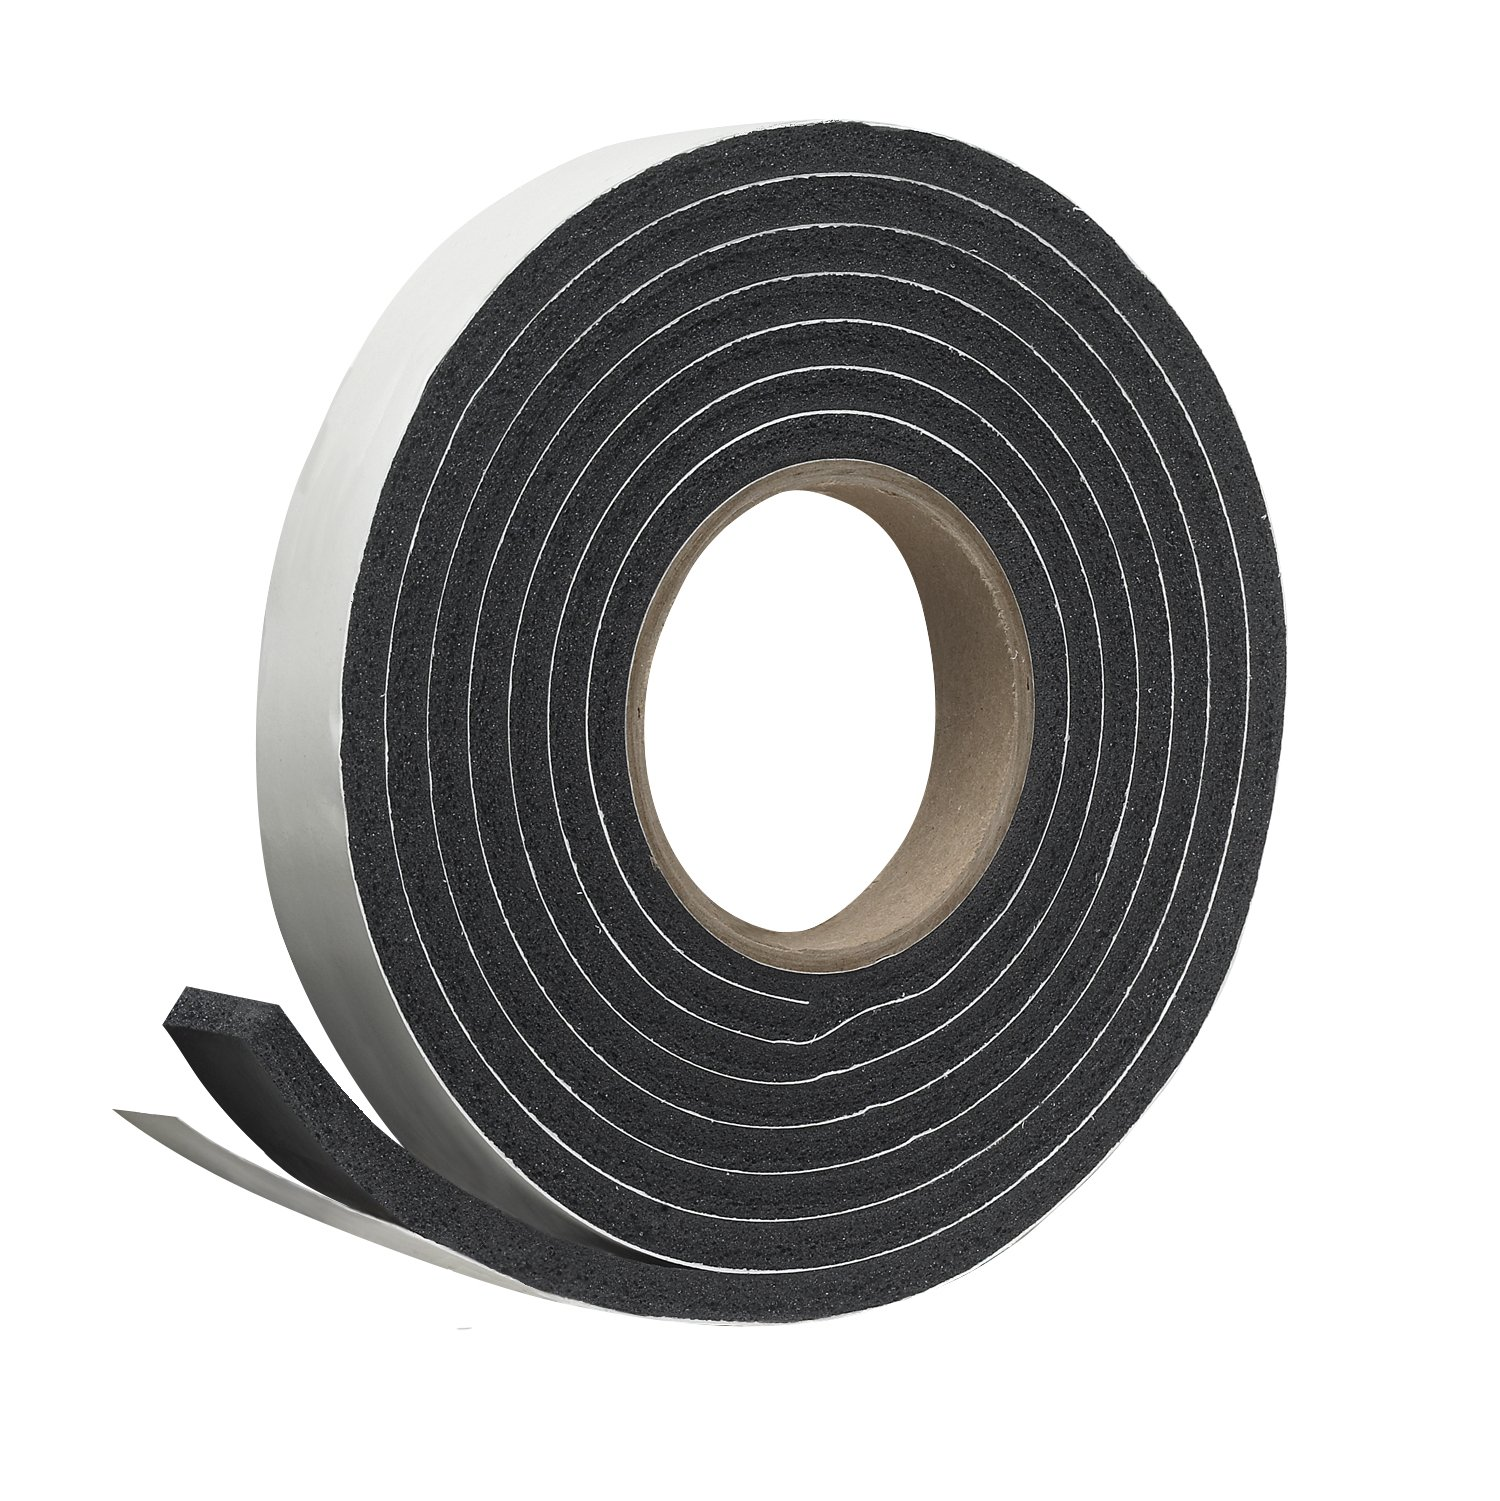 Frost King Sponge Rubber Foam Tape - Minimum Compression, 1'' W, 5/16'' T, 10' L, Black